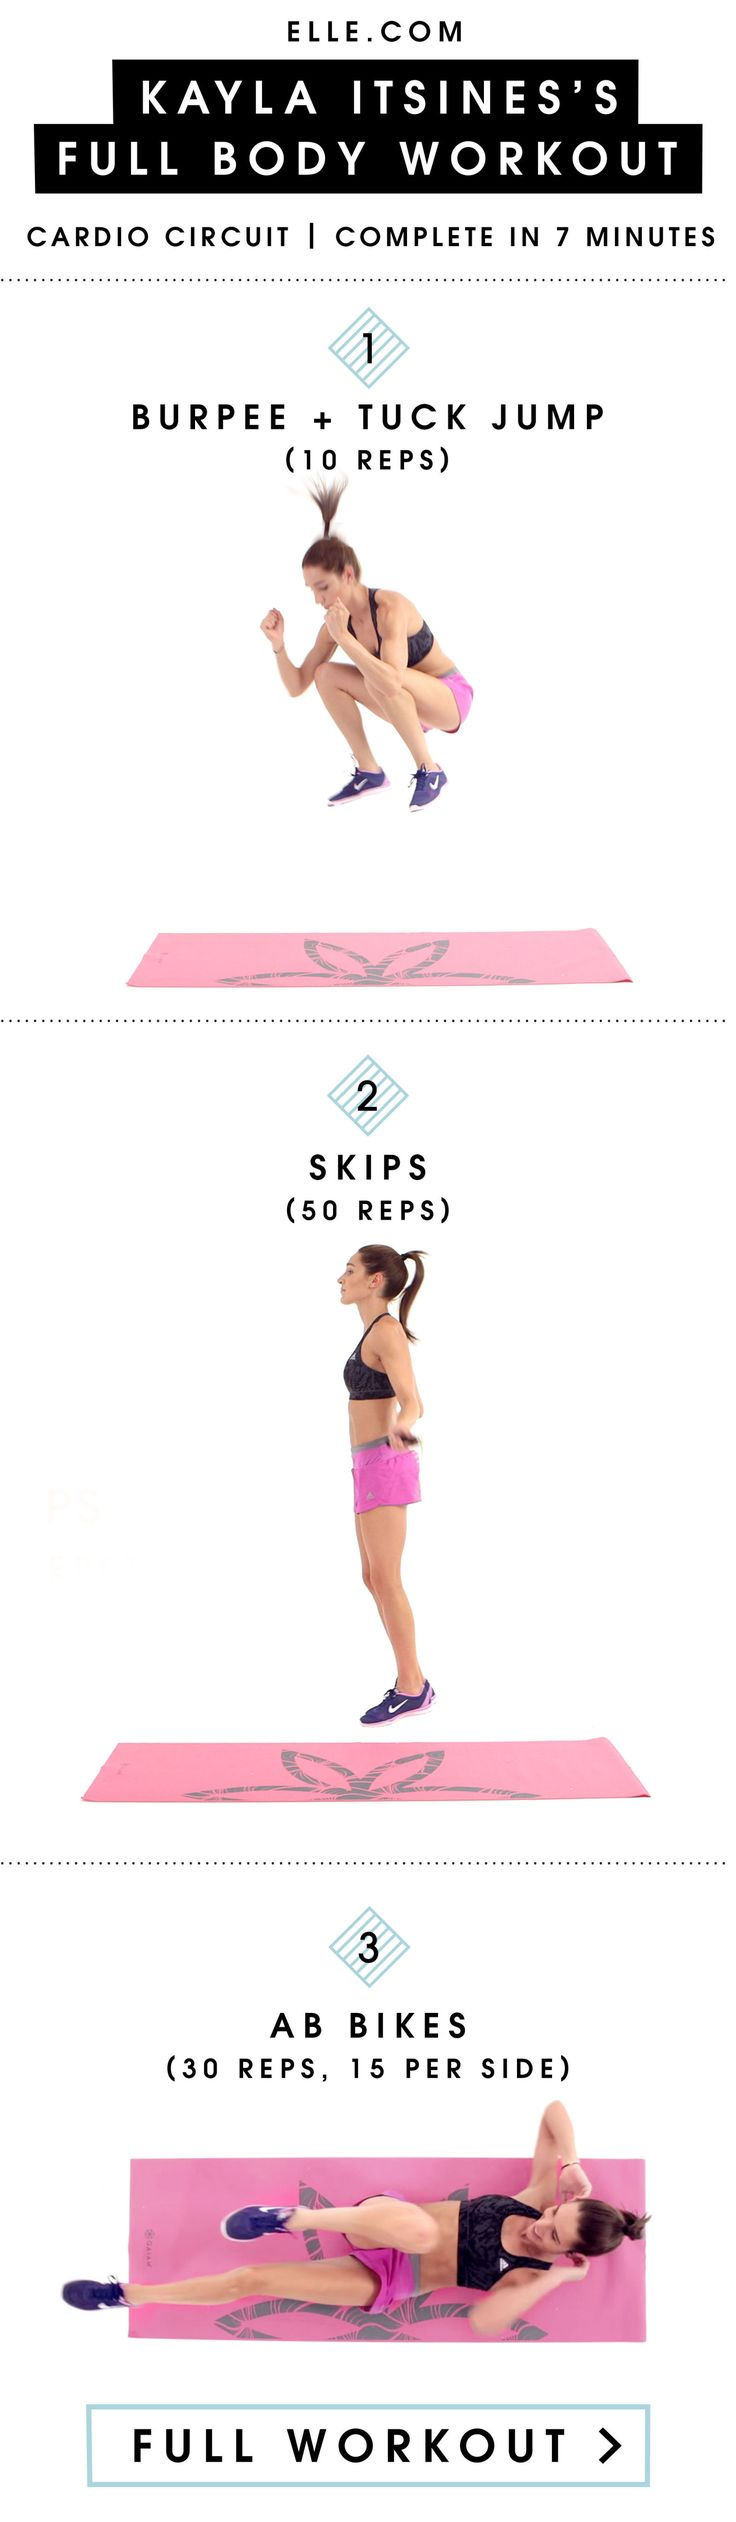 Kick Off Your 2016 Fitness Goals with Kayla Itsines' New 7-Minute, Whole-Body Workout  - ELLE.com